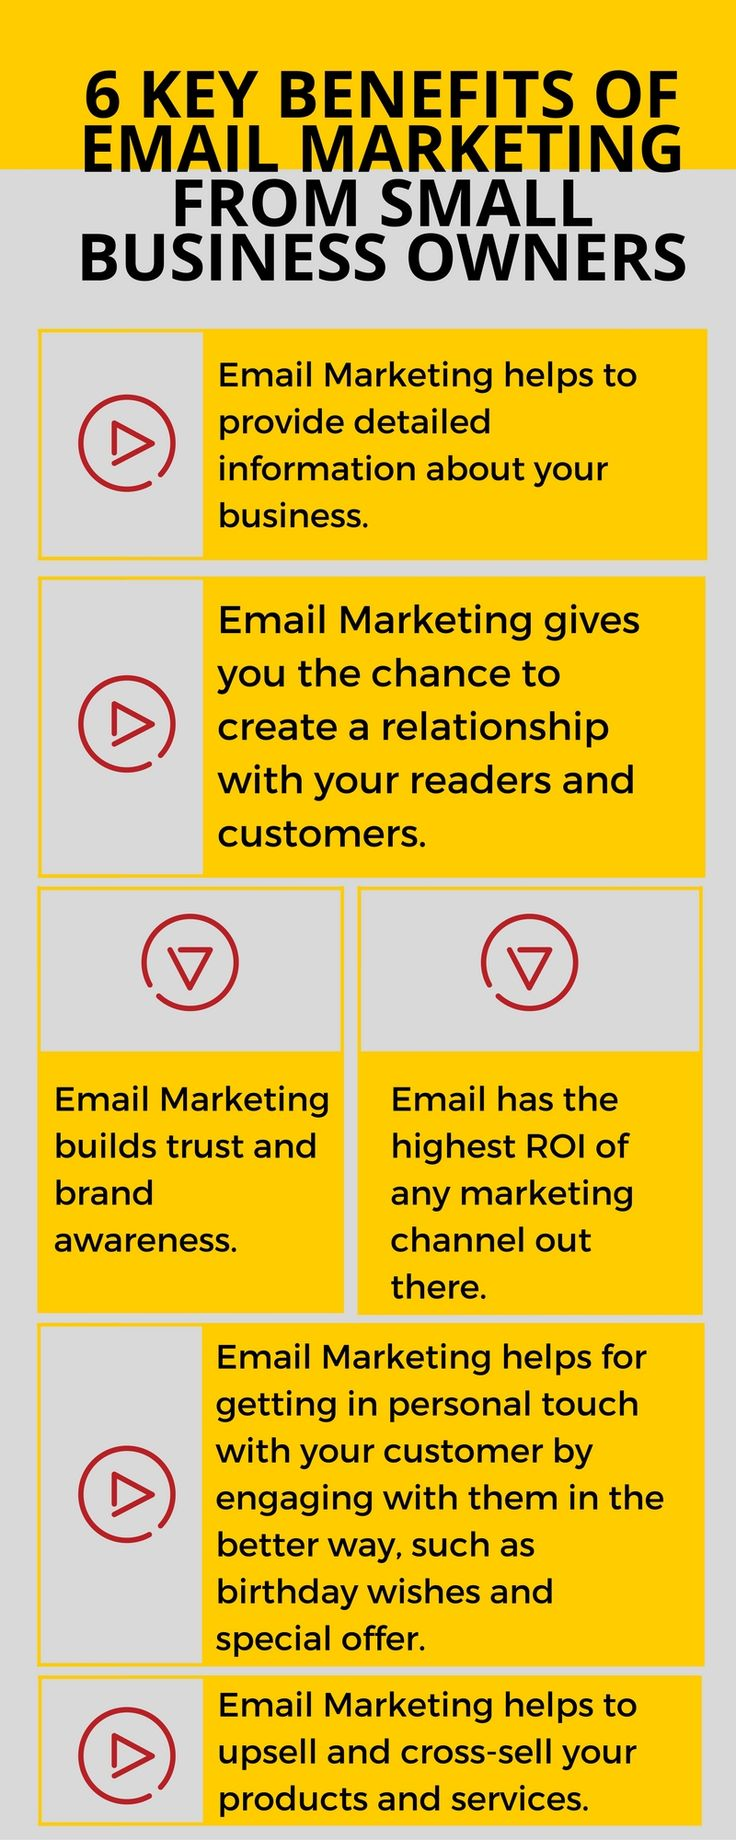 Email marketing Services in Pune are provided by Maximus Leads which is a best email marketing company. We have affordable  packages as per your requirement. We use professional tools to send, track and manage Email newsletters.  Contact Details:  Call us at: +(91) 9545 2407 66  Visit us at: http://maximusleads.com/email-marketing-services.html